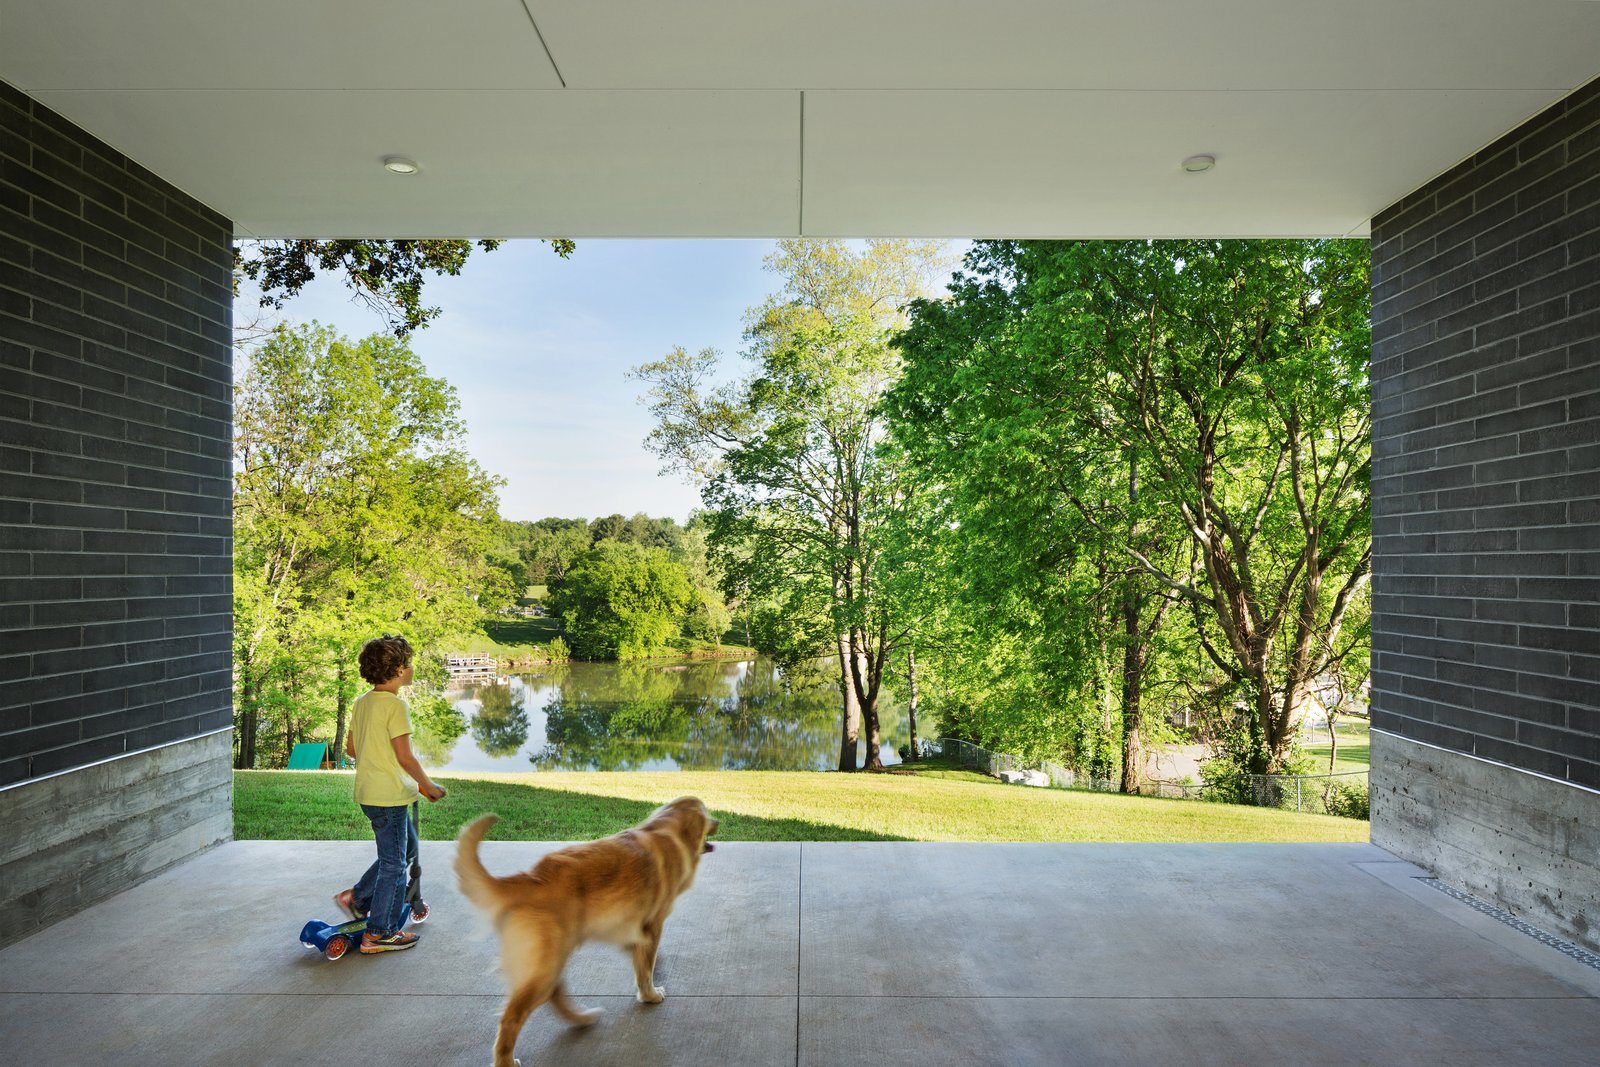 The carport frames a wonderful view of the river beyond and provides a sheltered play area during rain or excessive heat Boetger Residence by Chad Boetger